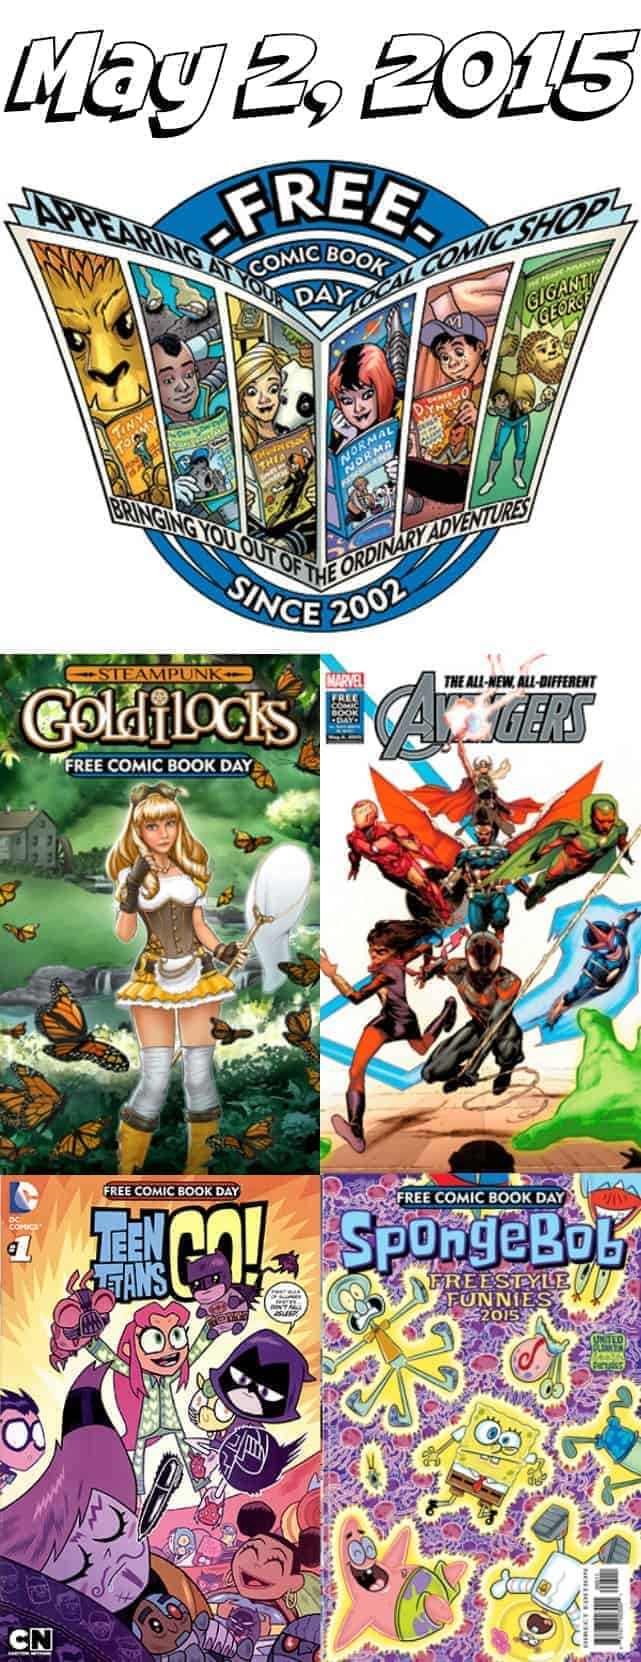 free comic book day on May 2, 2015 at participating comic book stores in the U.S.